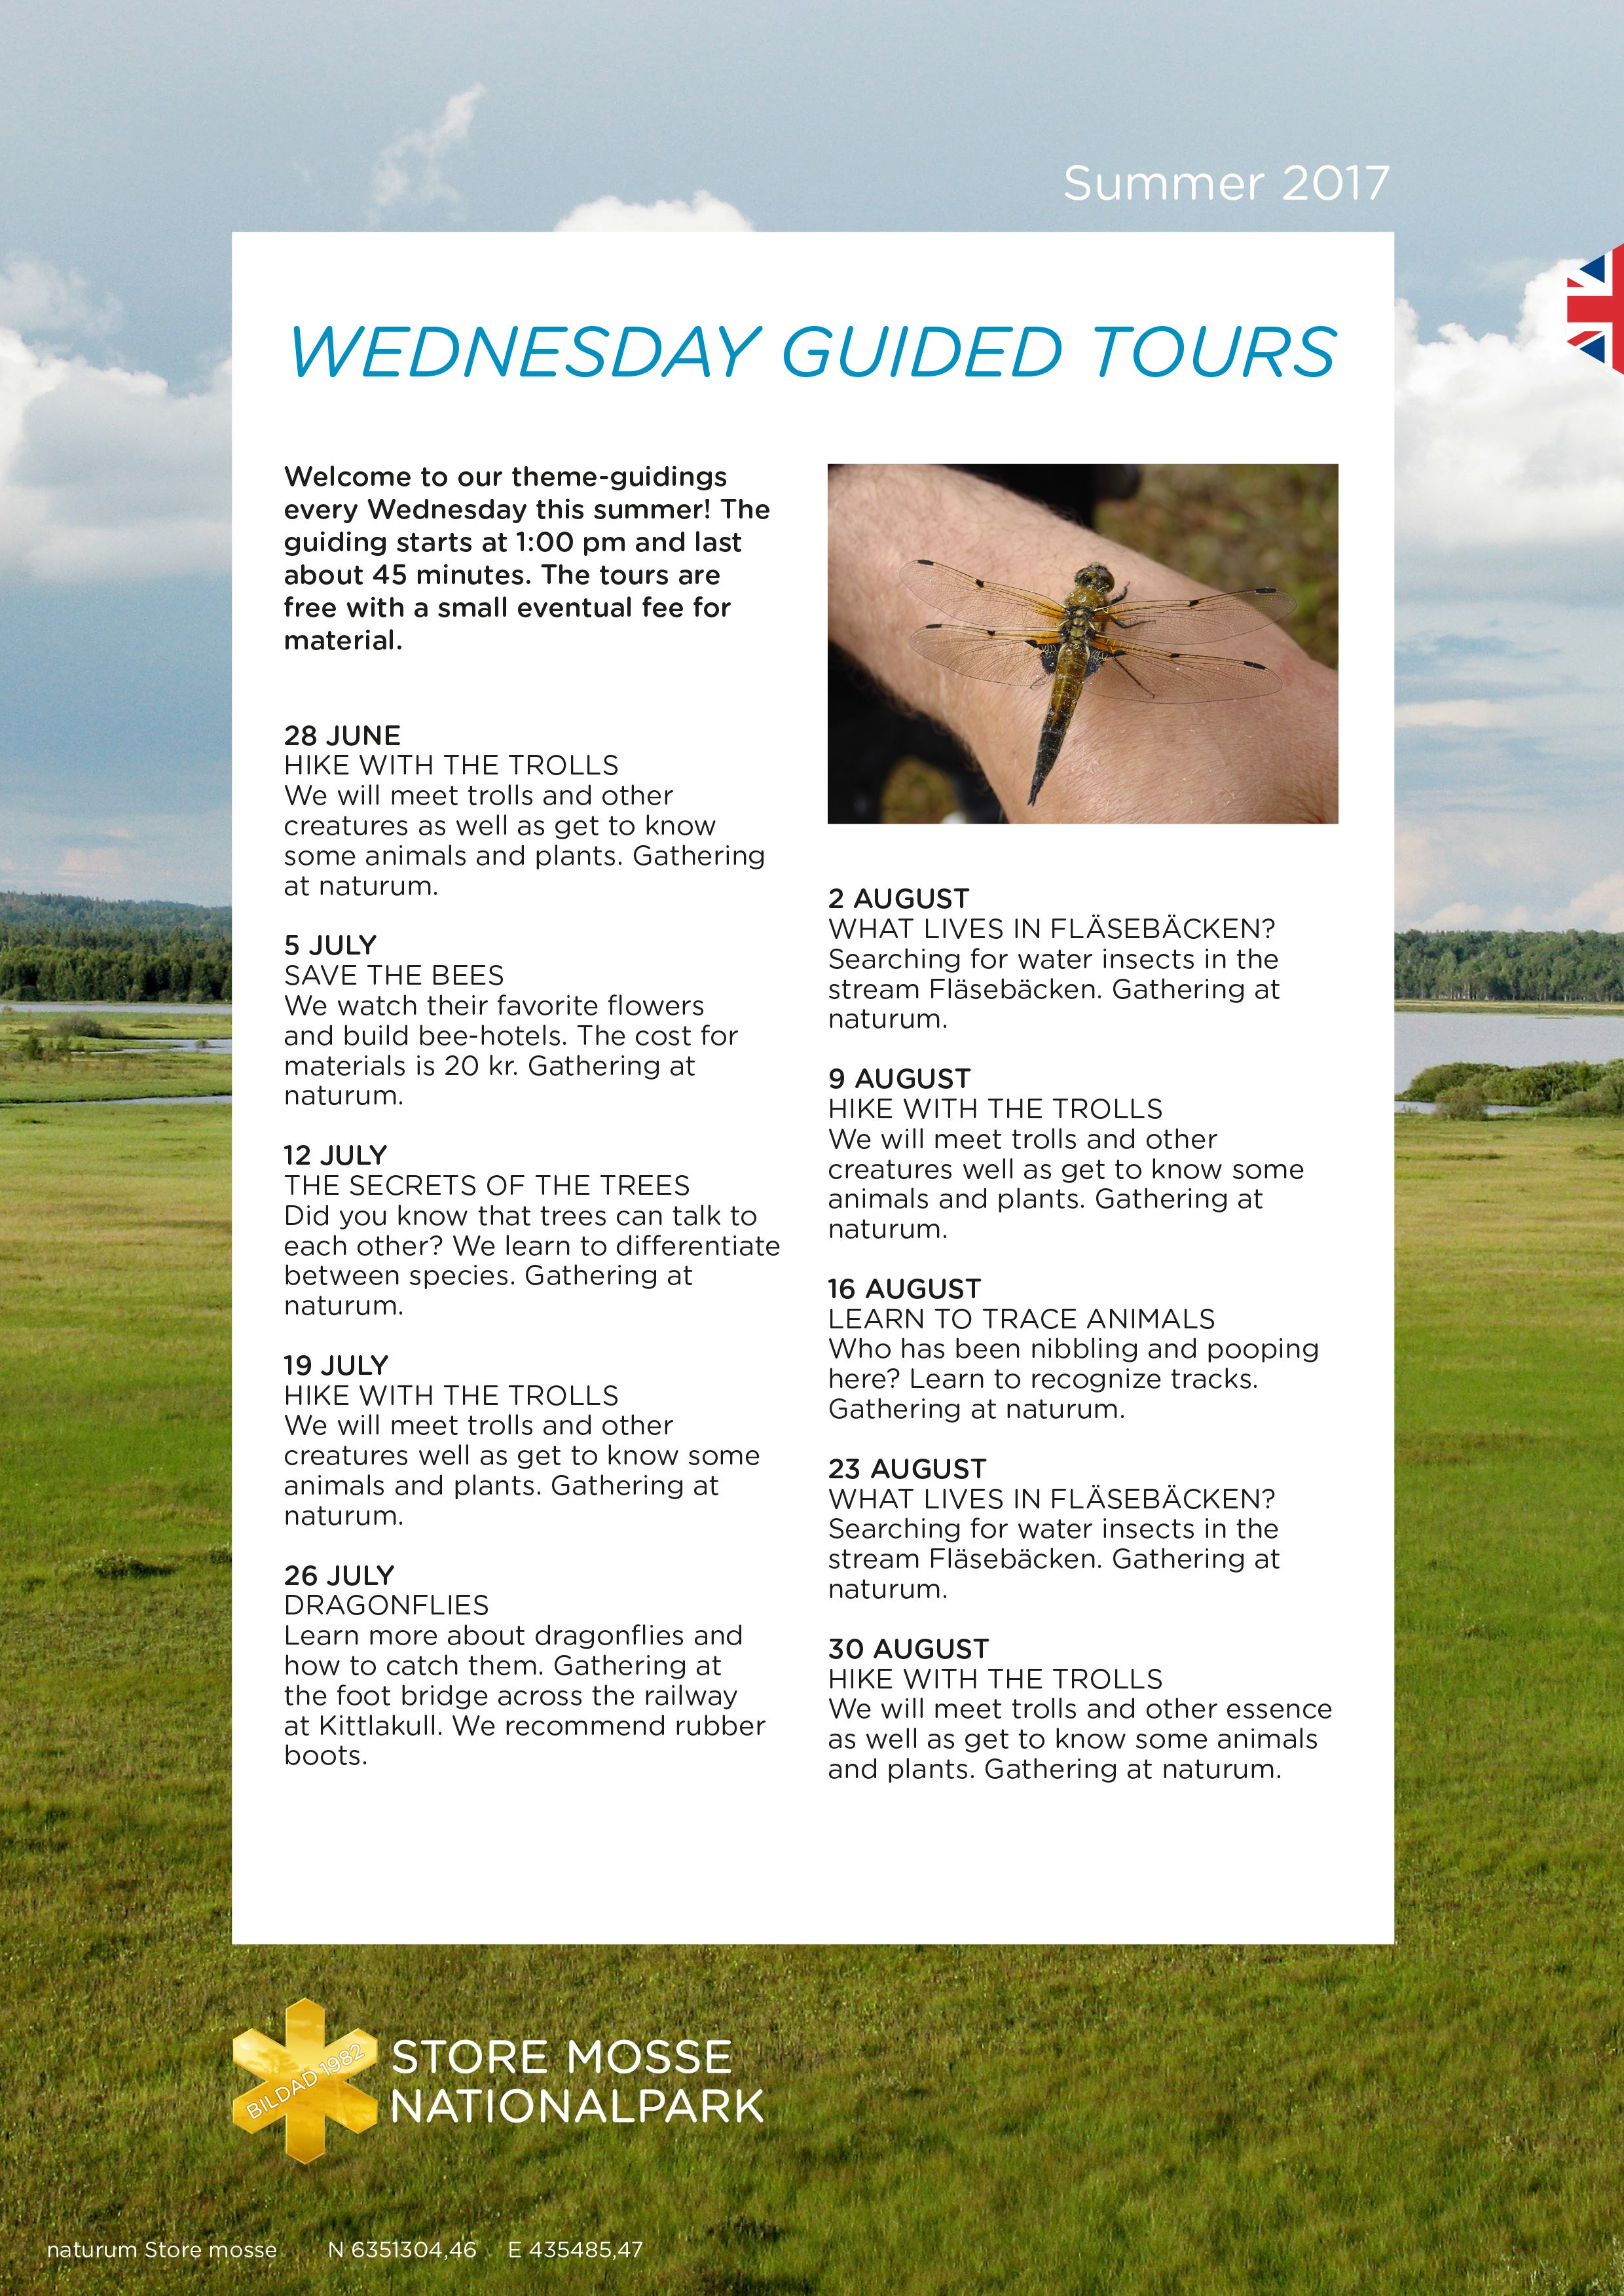 Wednesyday Guided Tours at Store Mosse